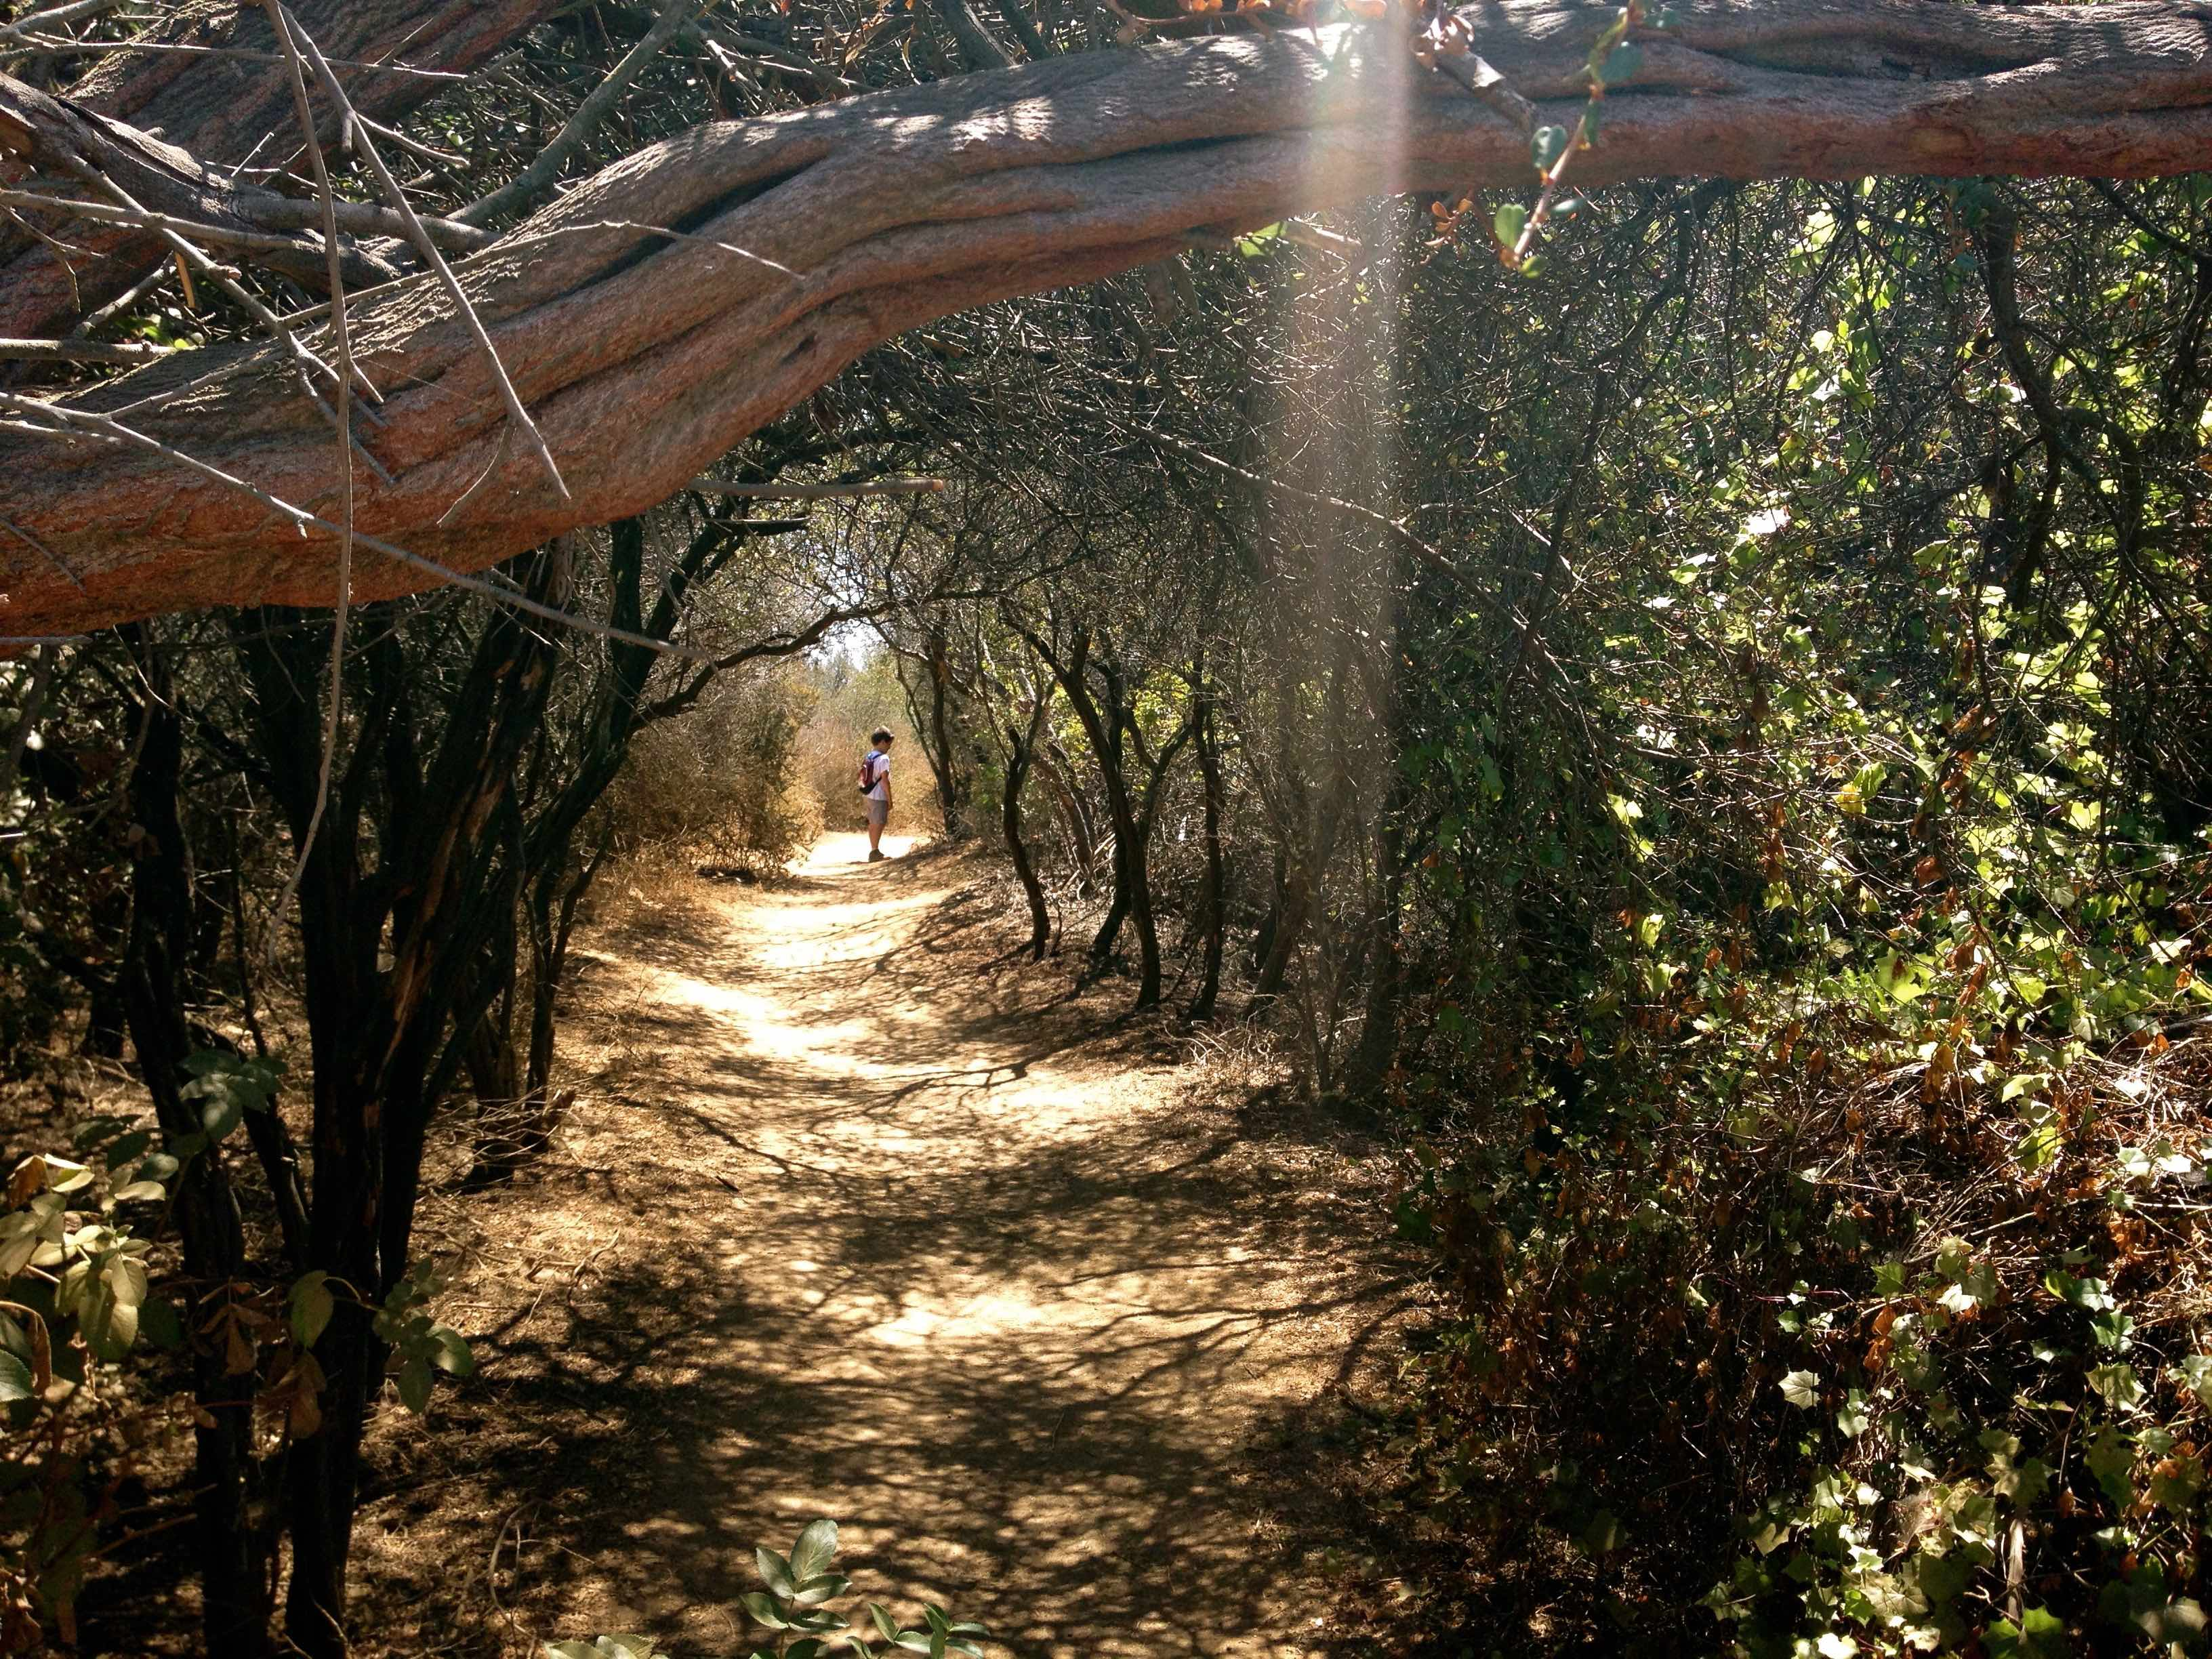 Hiking in Temescal Canyon is one of the fun things to do with kids in Pacific Palisades